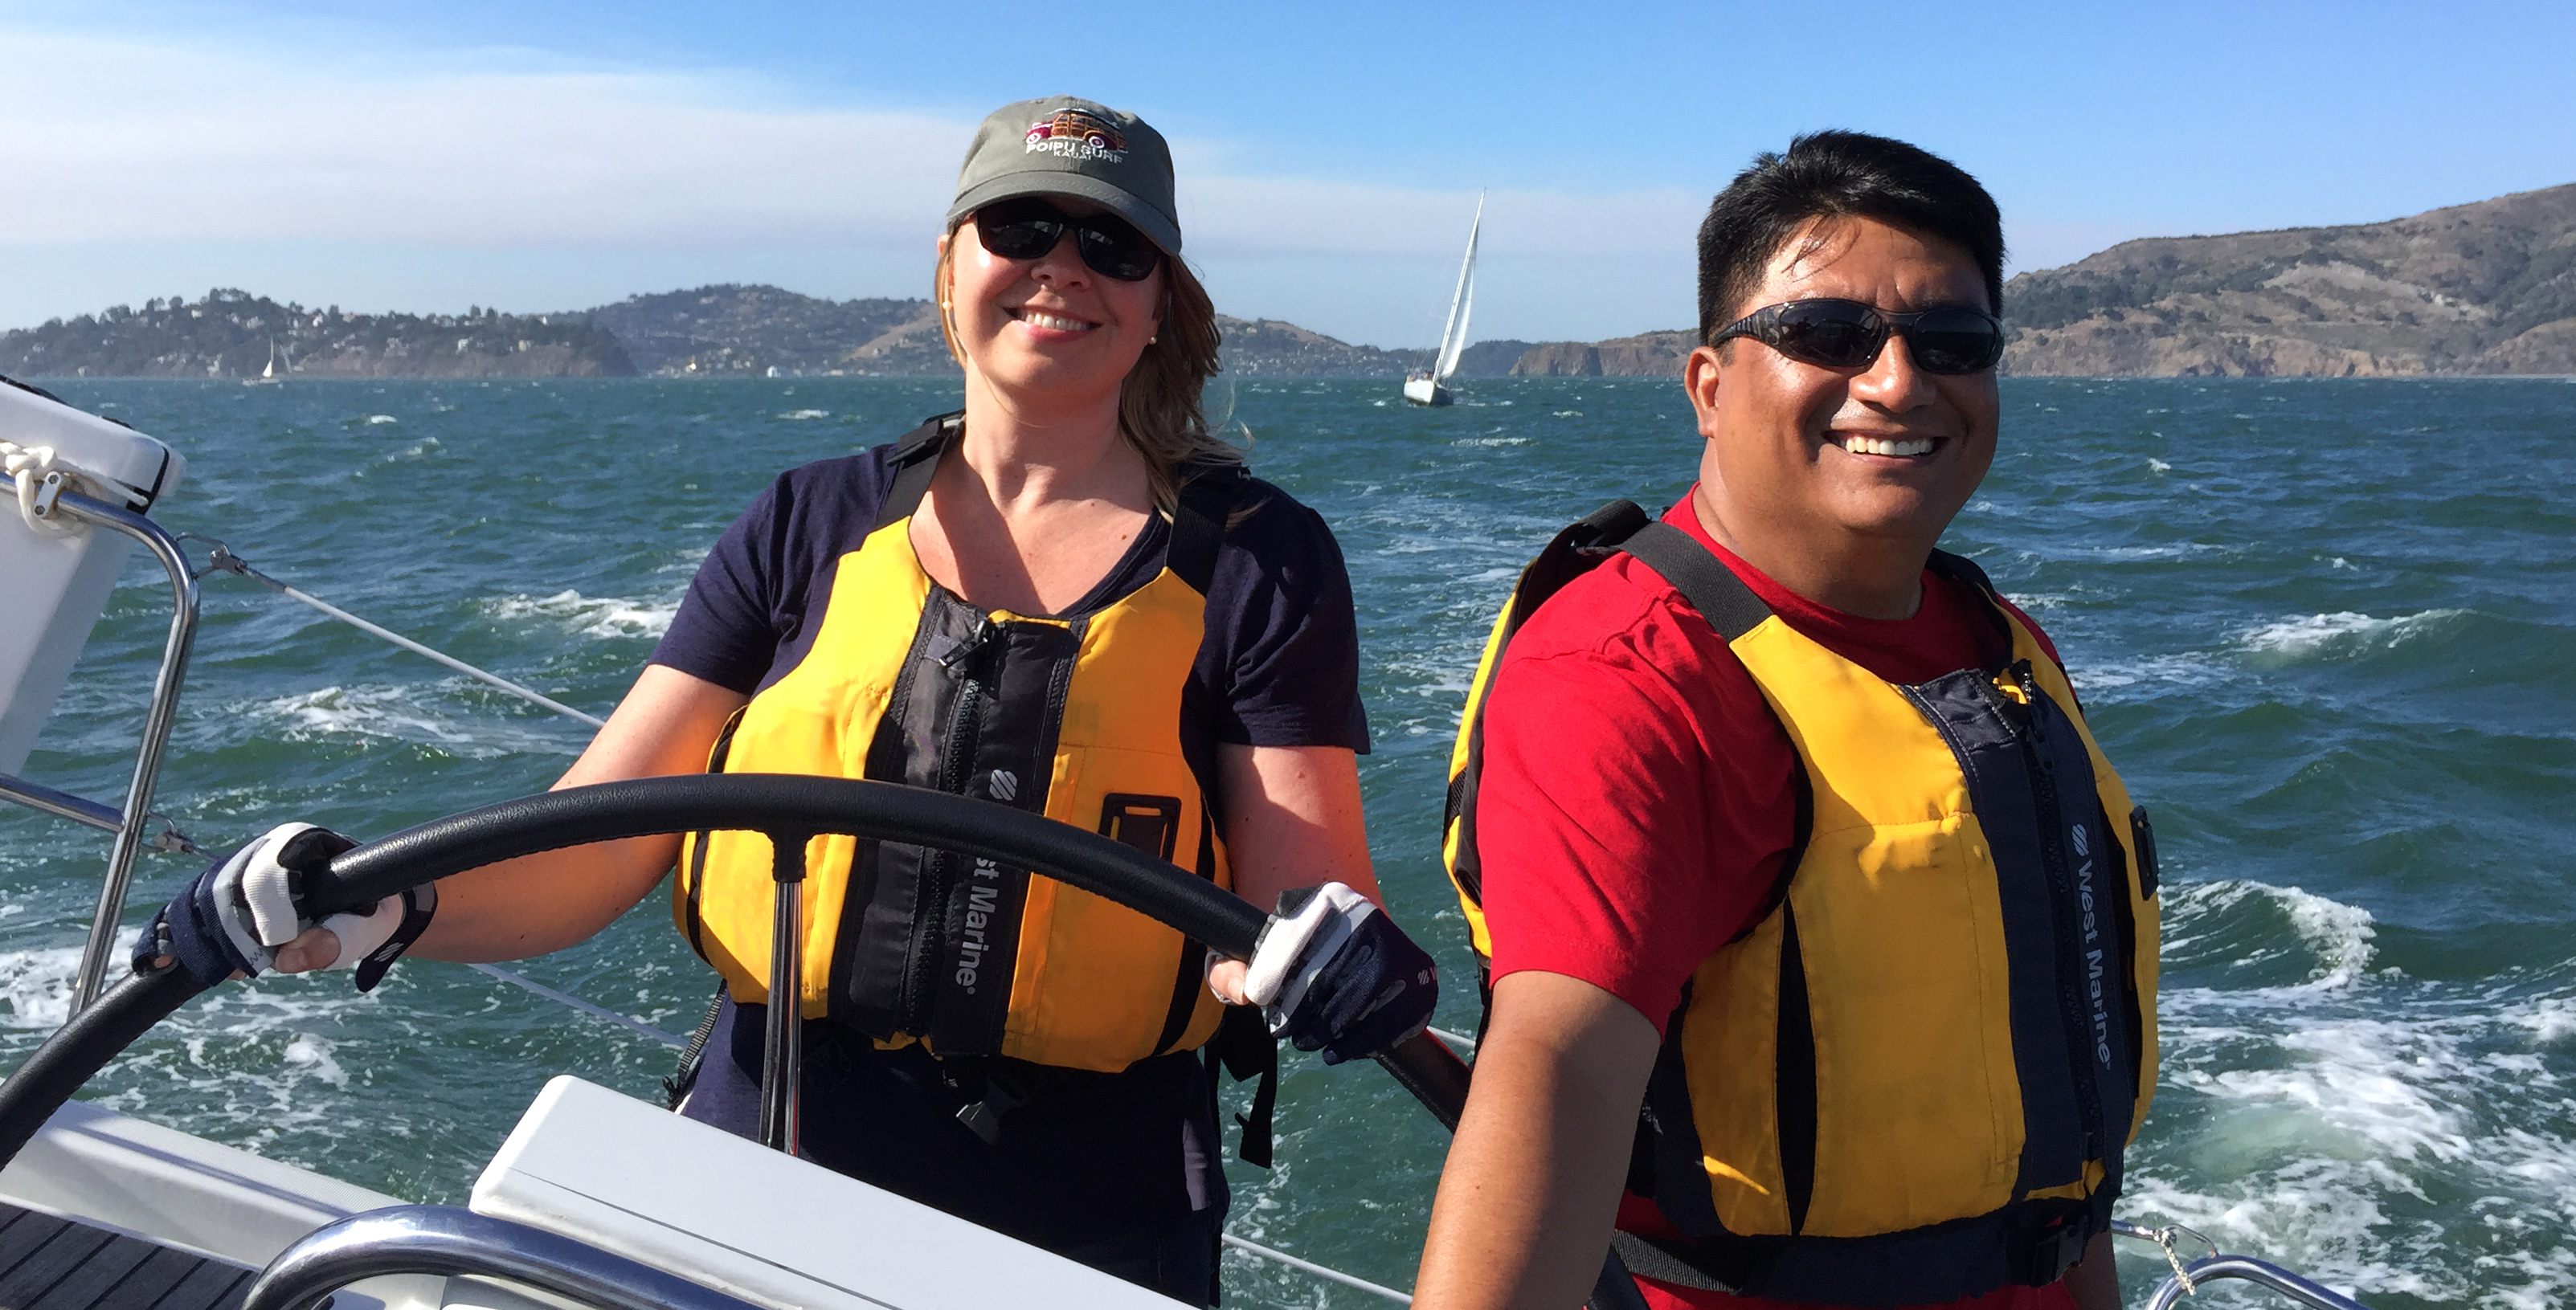 Sailing on San Francisco Bay in a private lesson with Modern Sailing School and Club